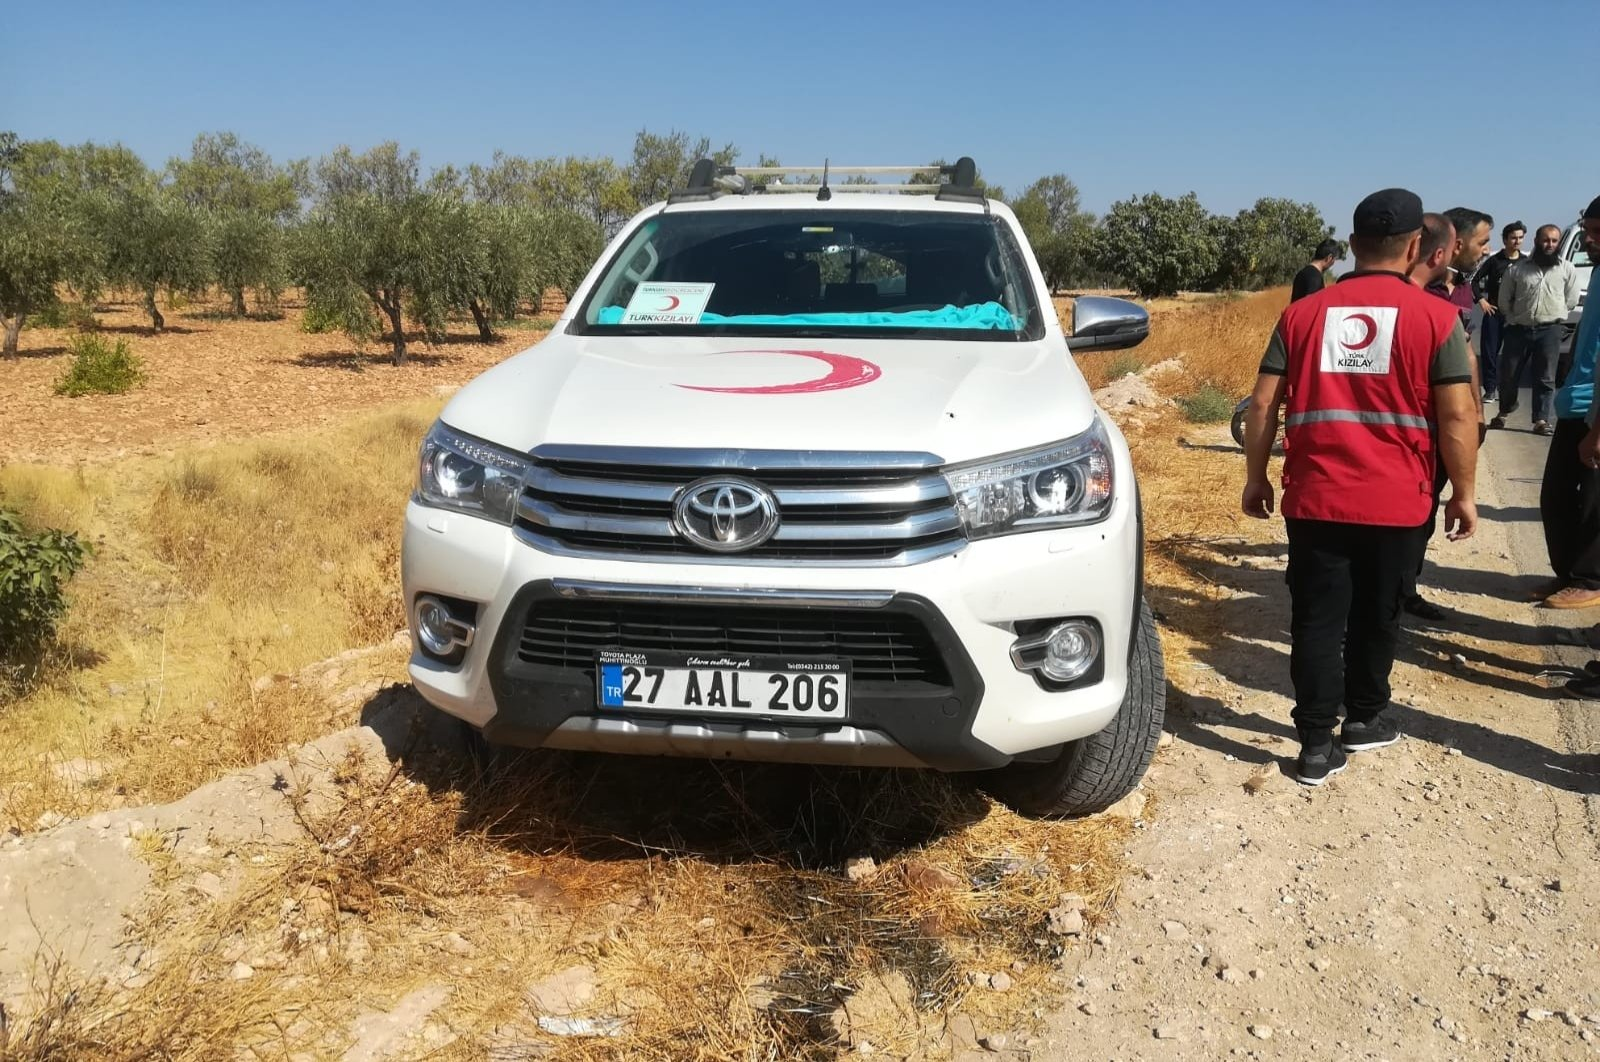 A vehicle belonging to Turkish Red Crescent is attacked in northern Syria by unknown individuals, killing one personnel, Sept.14, 2020. (IHA Photo)